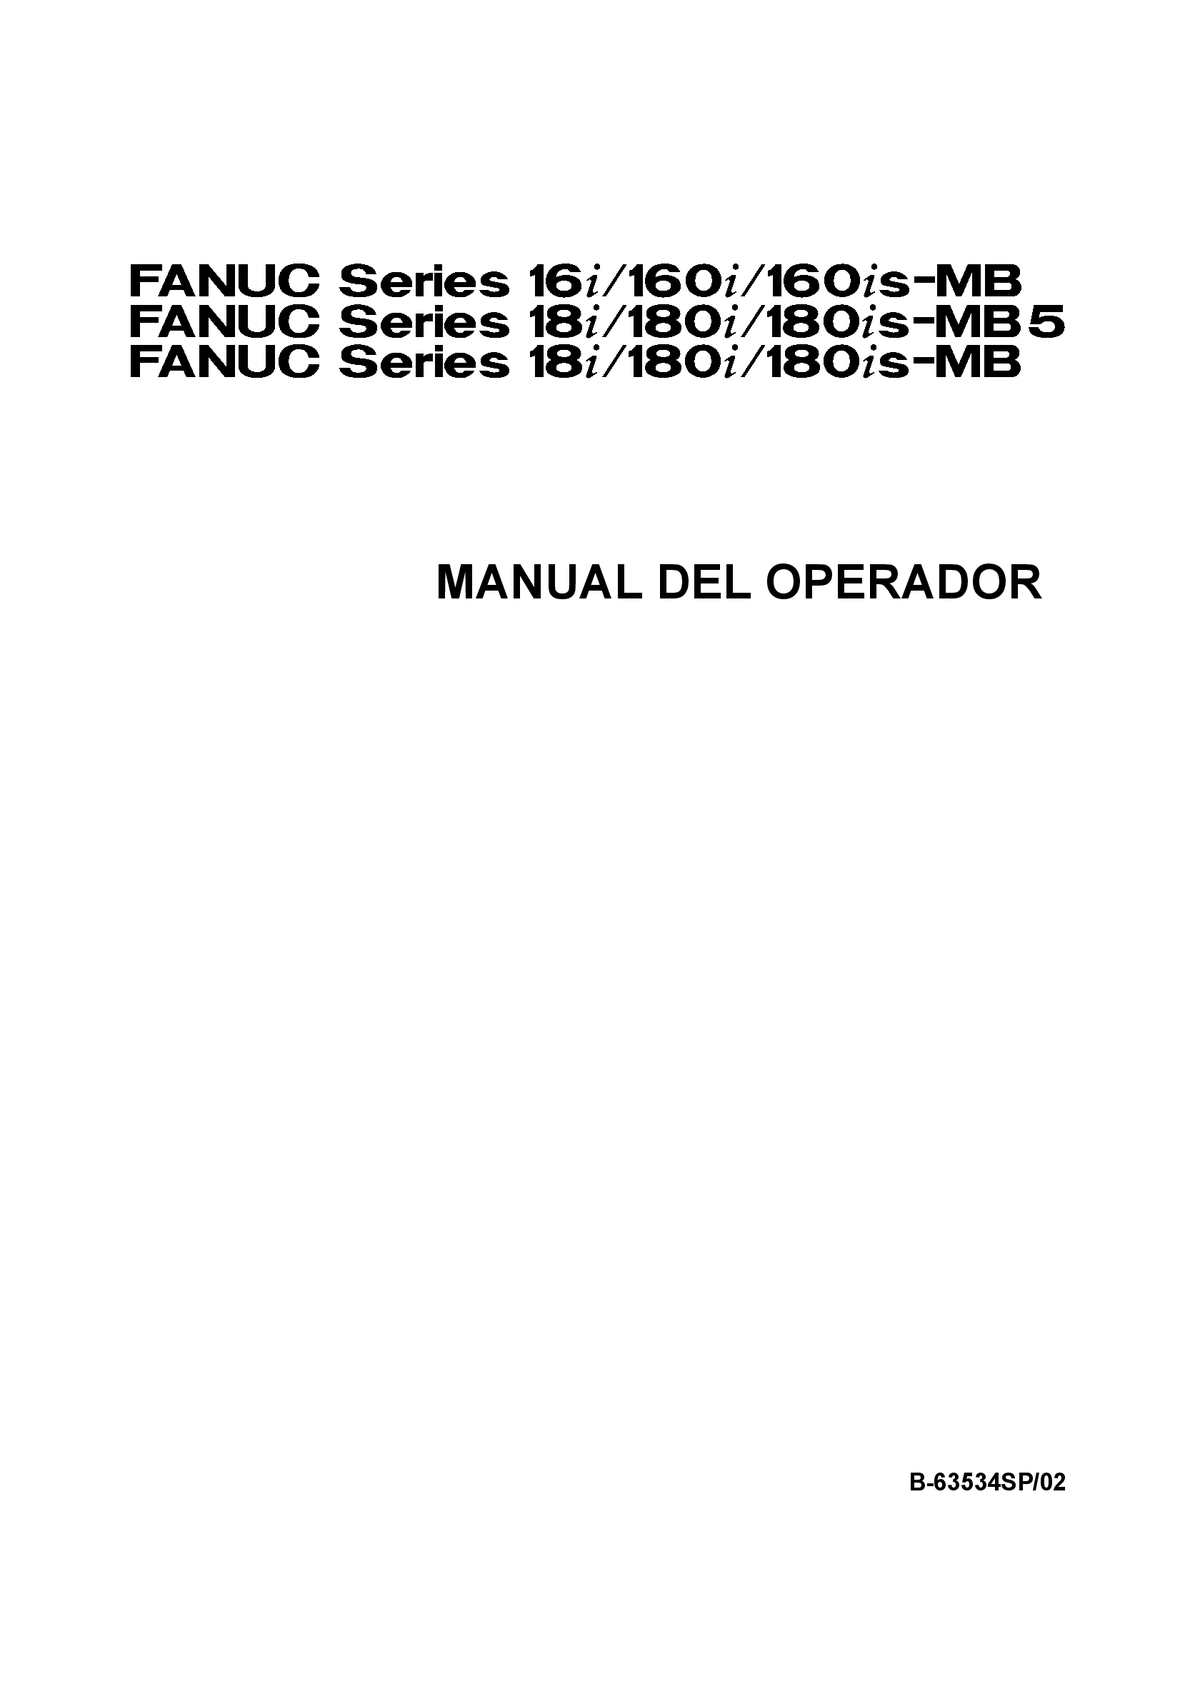 MANUAL DEL OPERADOR PANEL FANUC